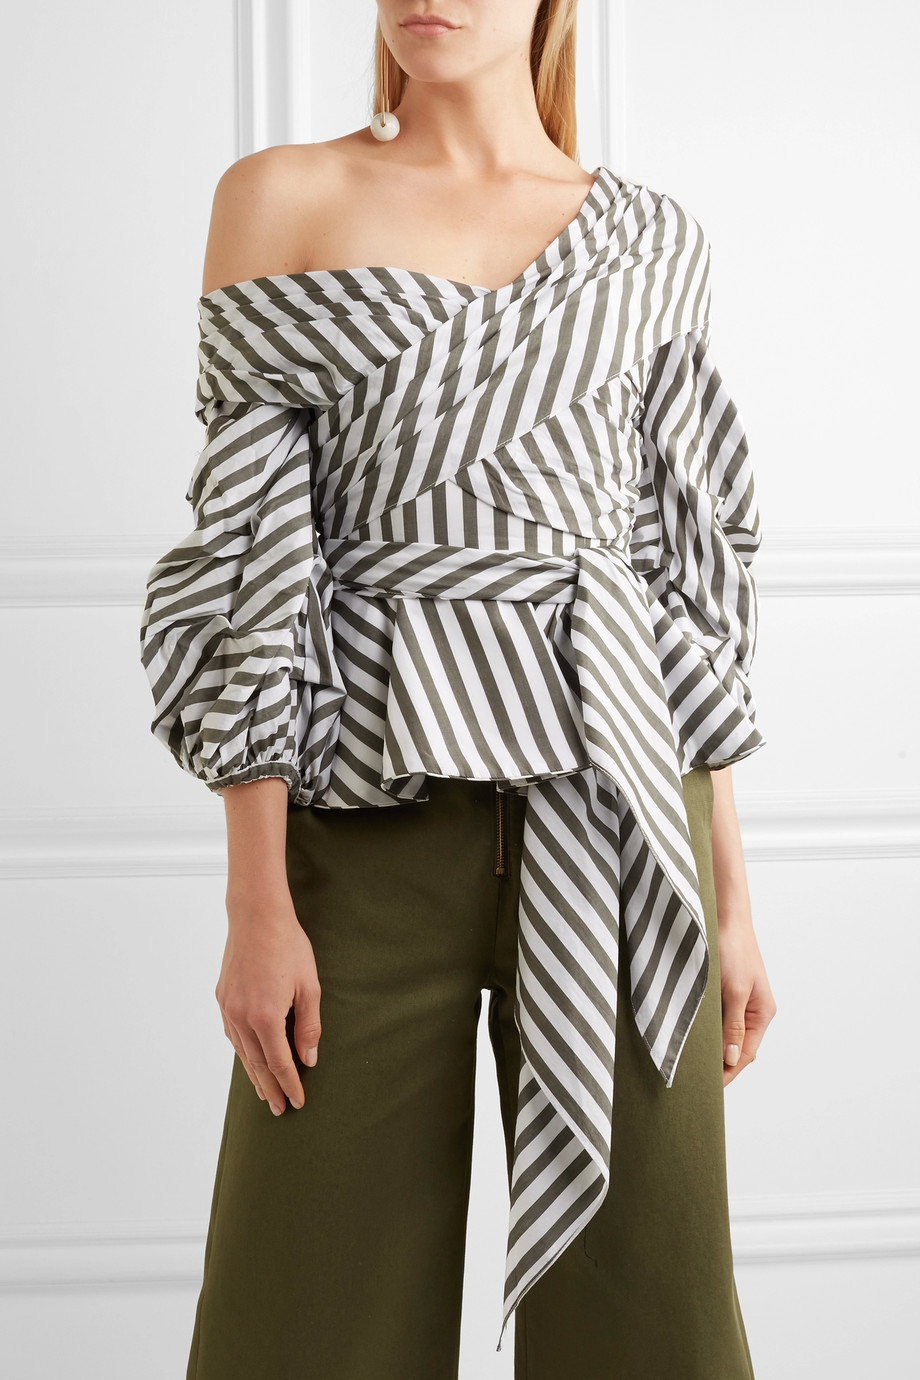 Structured Cotton Blouses for Spring & Summer Black and White Stripe